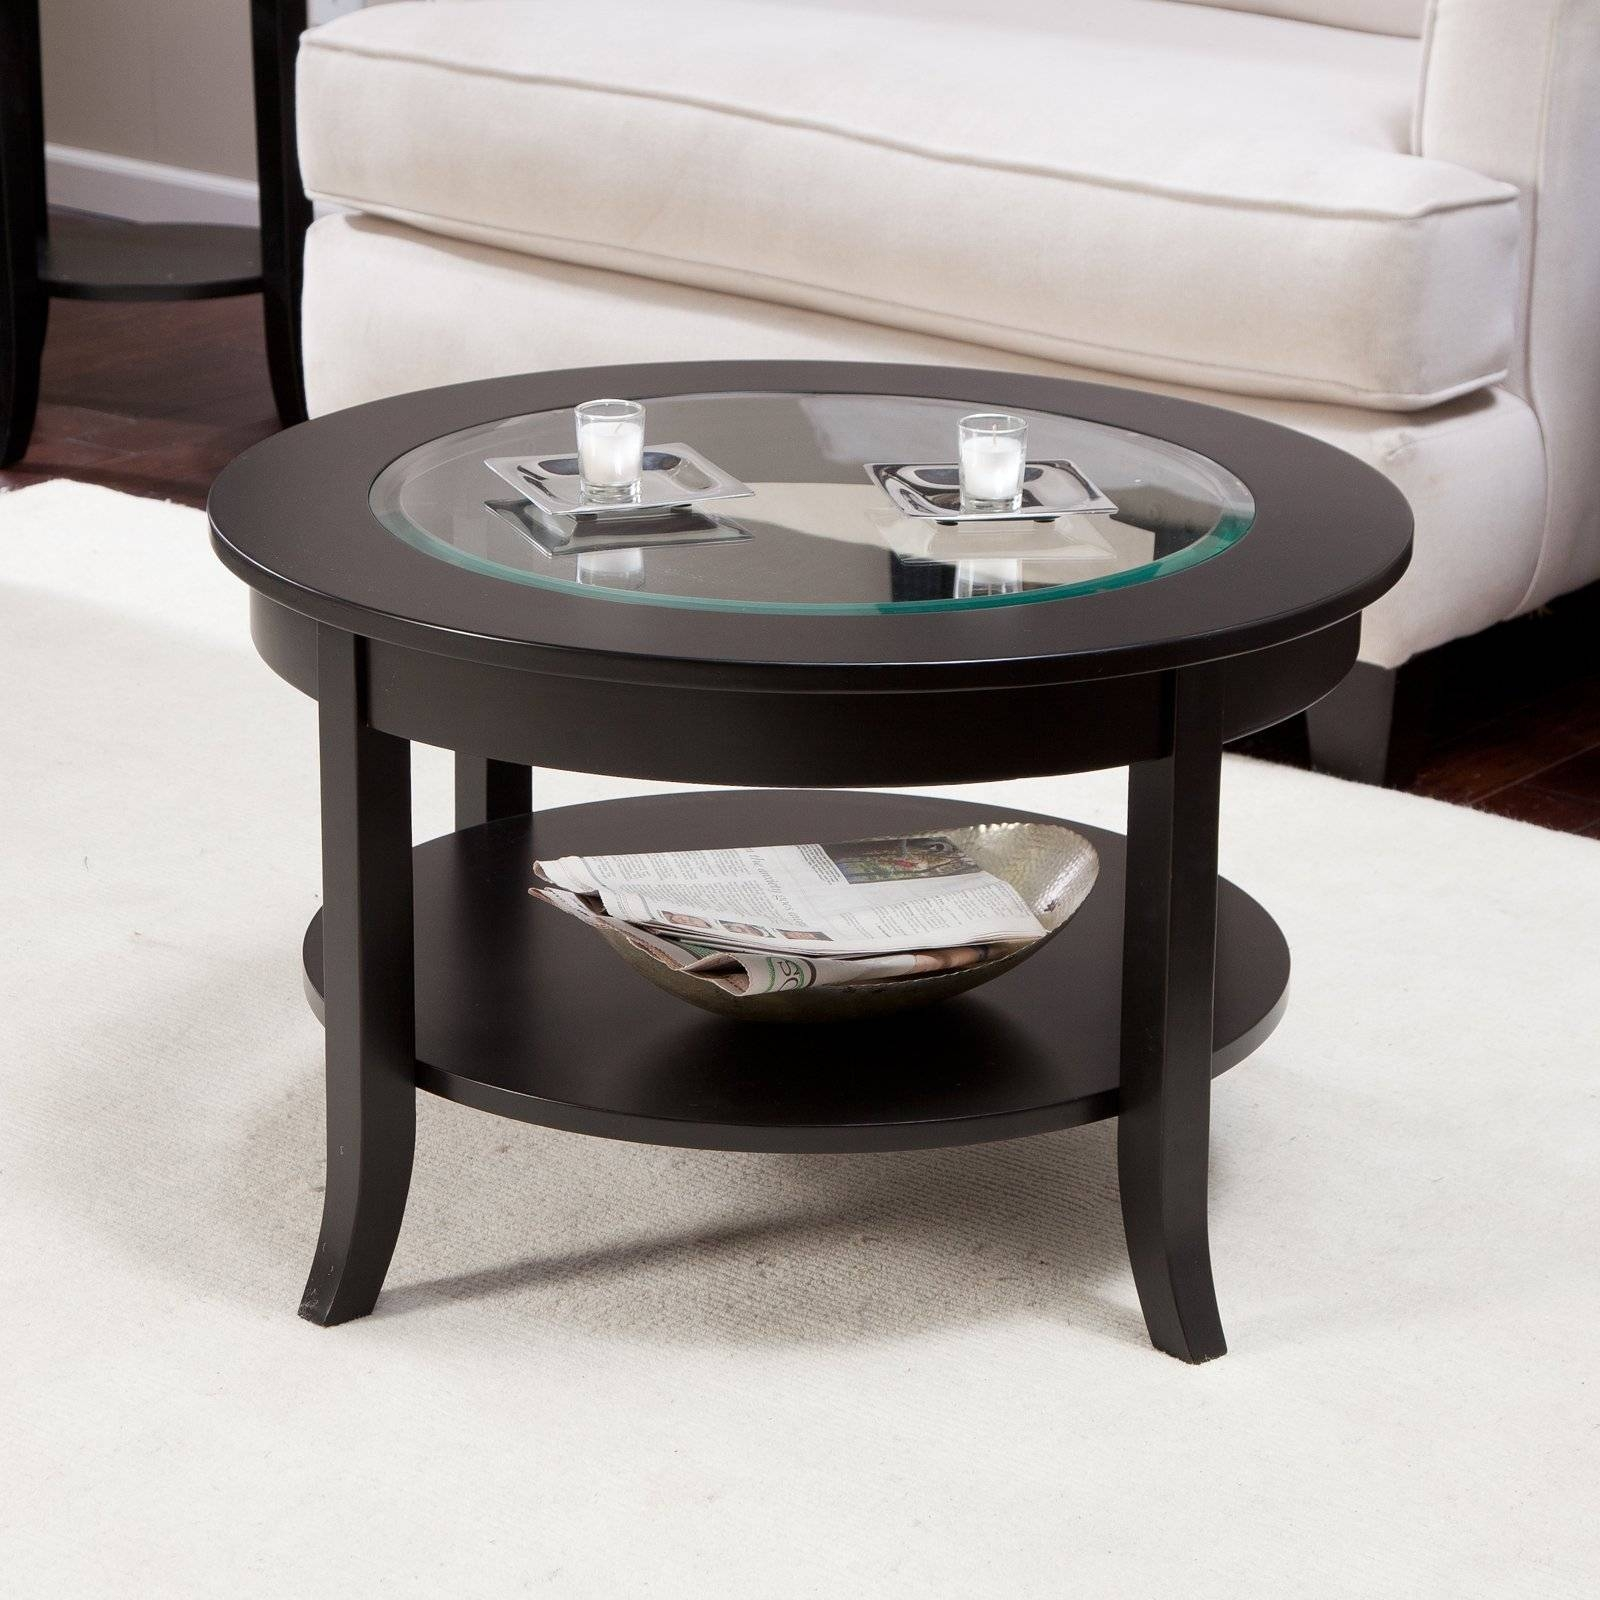 Small Glass Coffee Tables | Coffee Tables Decoration pertaining to Round Glass Coffee Tables (Image 26 of 30)